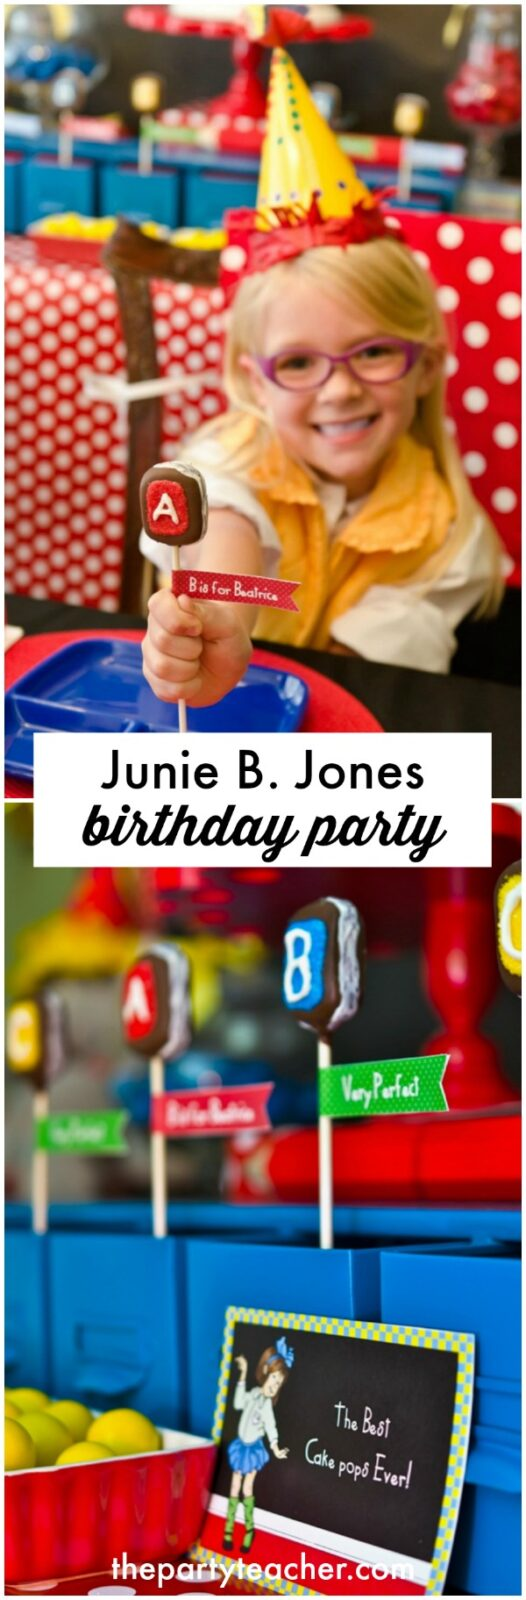 How to plan a Junie B Jones birthday party by The Party Teacher